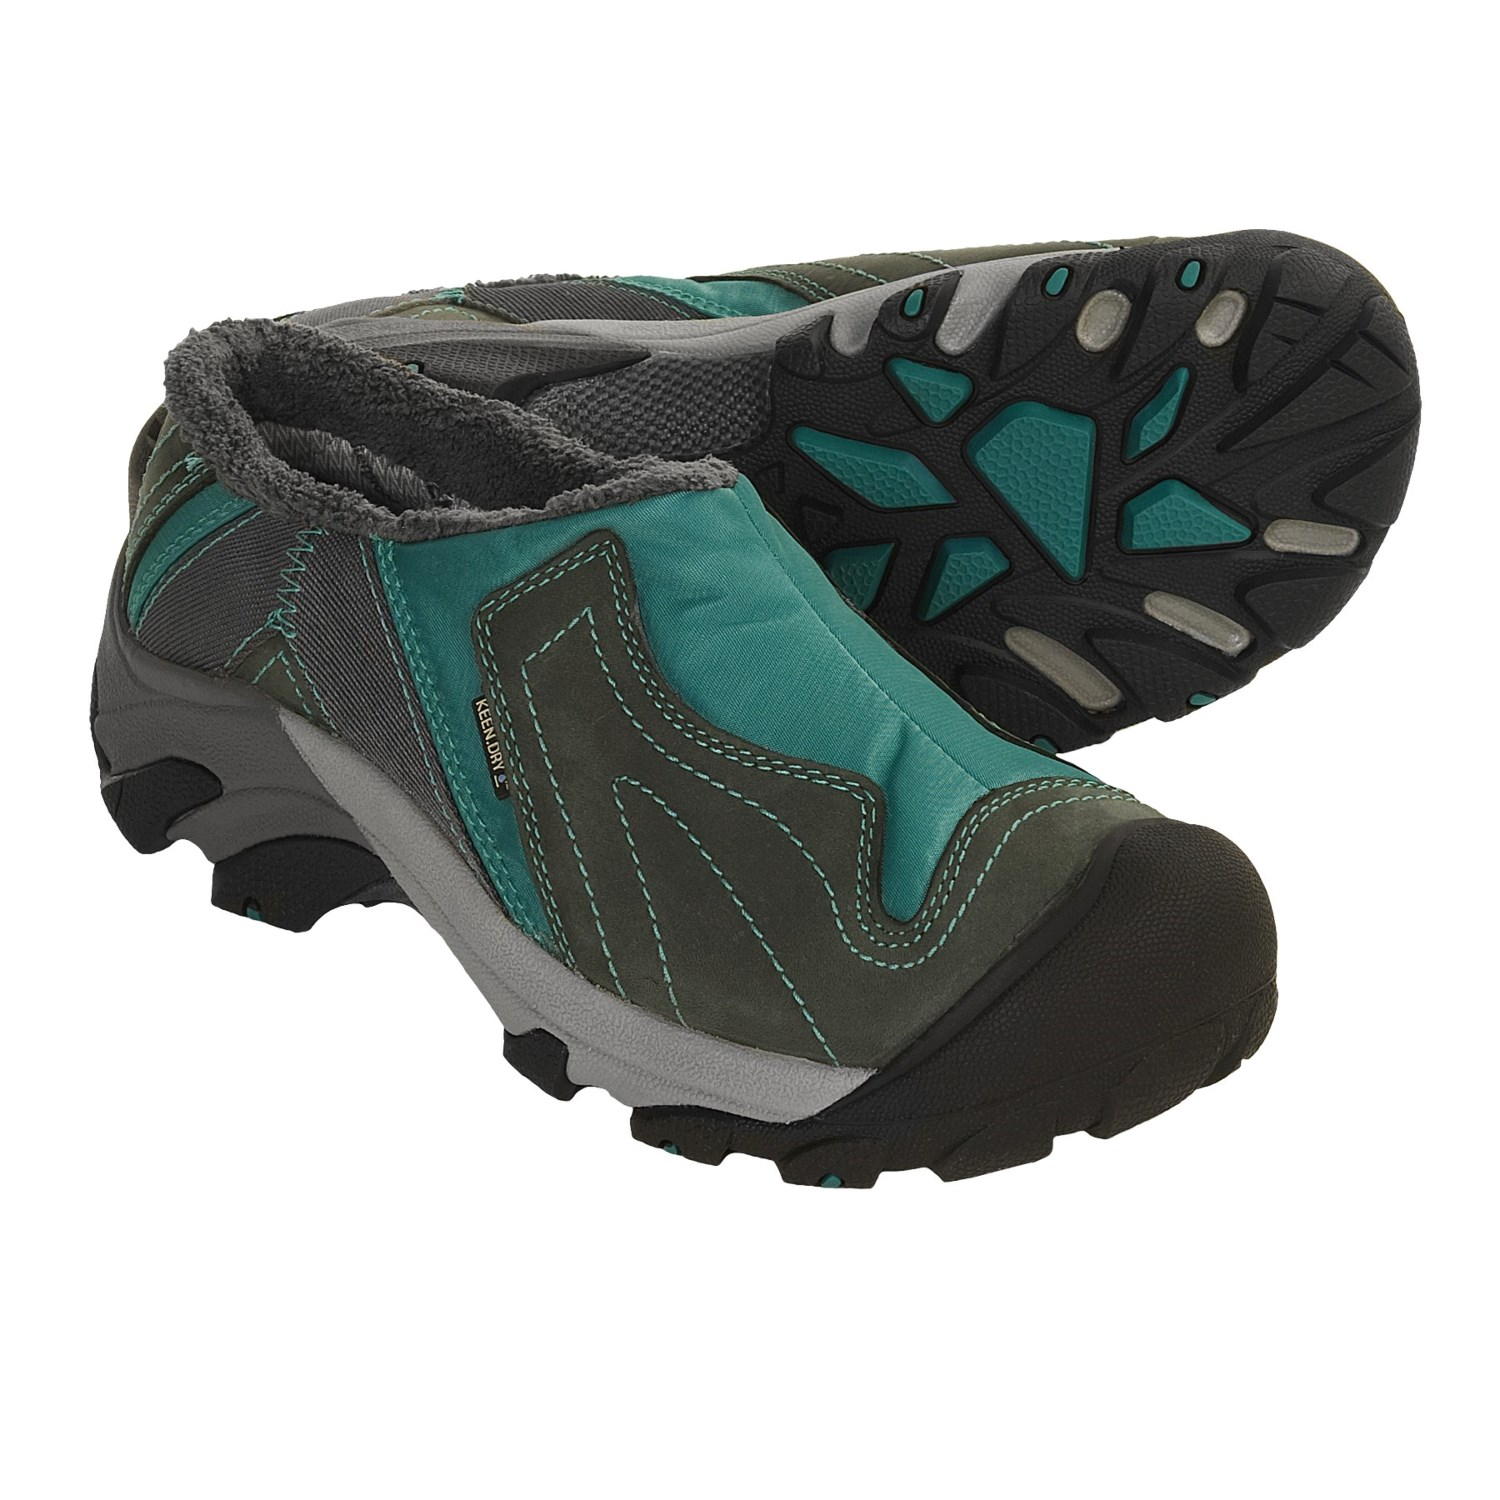 Keen Betty Winter Shoes Waterproof, Insulated (For Women) Save 50